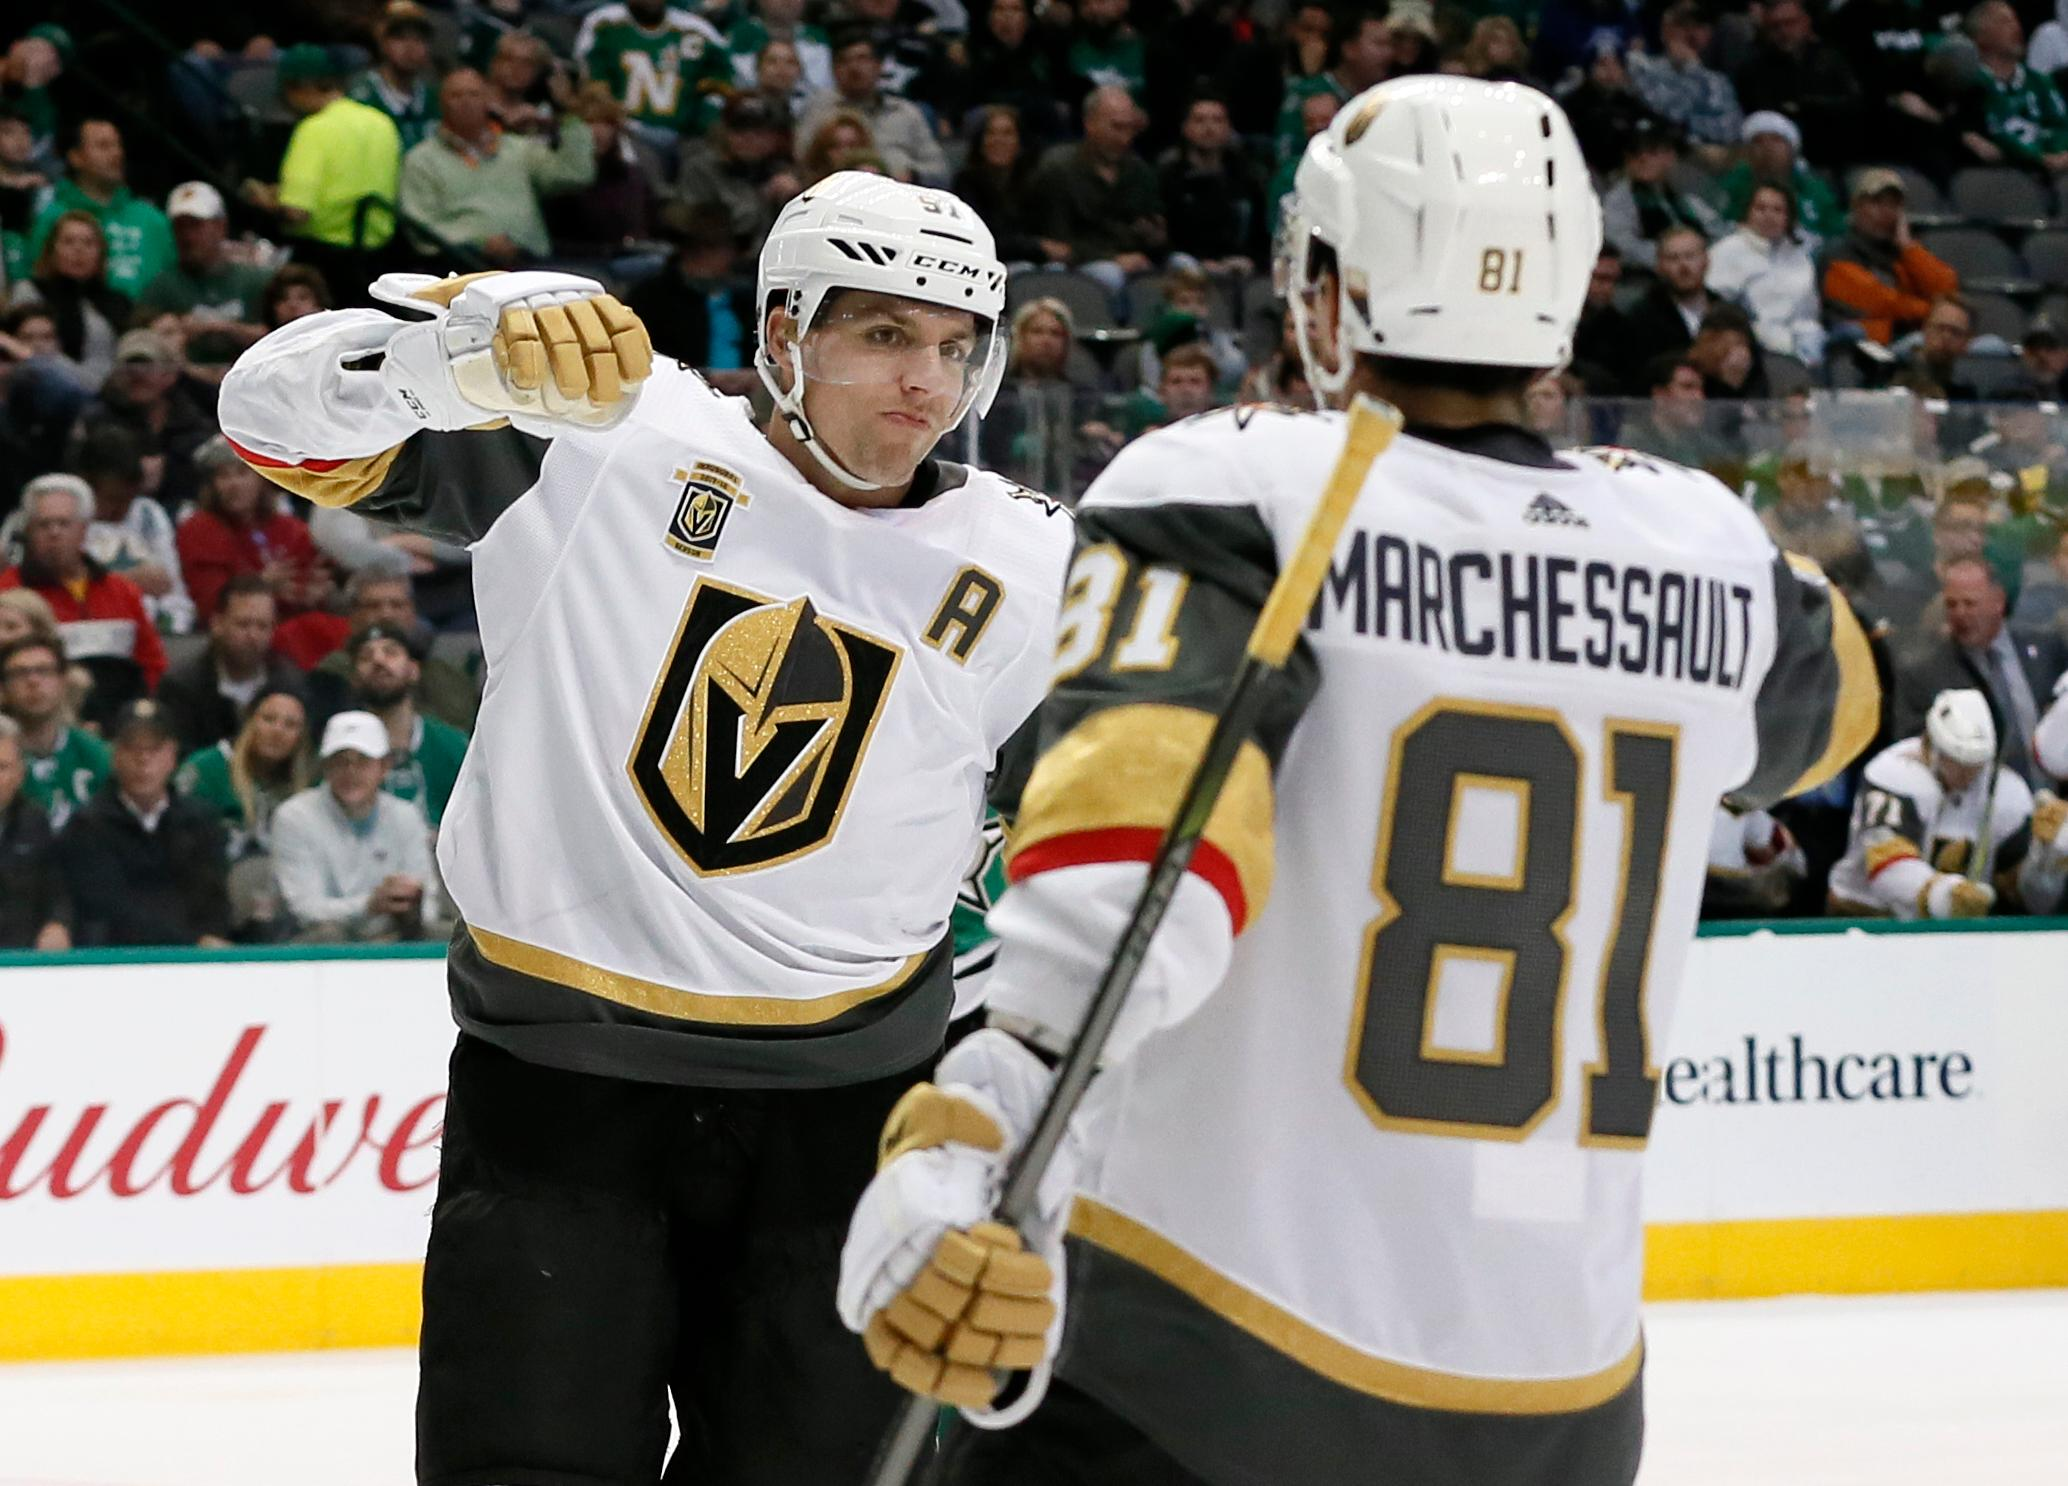 Vegas Golden Knights' David Perron (57) and Jonathan Marchessault (81) celebrate a goal by Perron during the second period of an NHL hockey game against the Dallas Stars on Saturday, Dec. 9, 2017, in Dallas. (AP Photo/Tony Gutierrez)